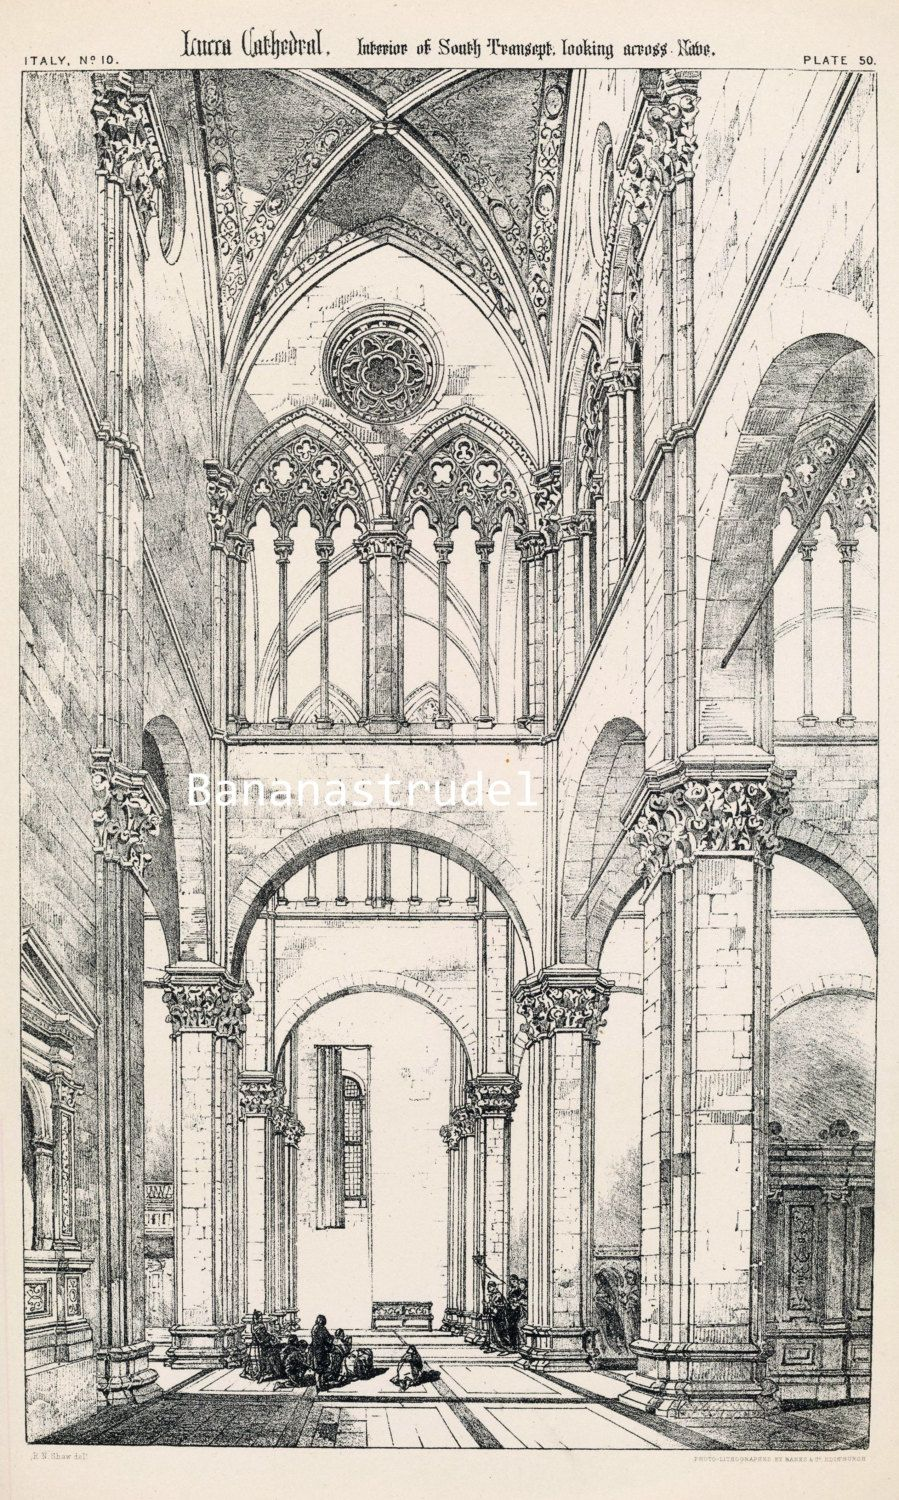 1872 architectural plate of the interior of the lucca cathedral in italy this 137